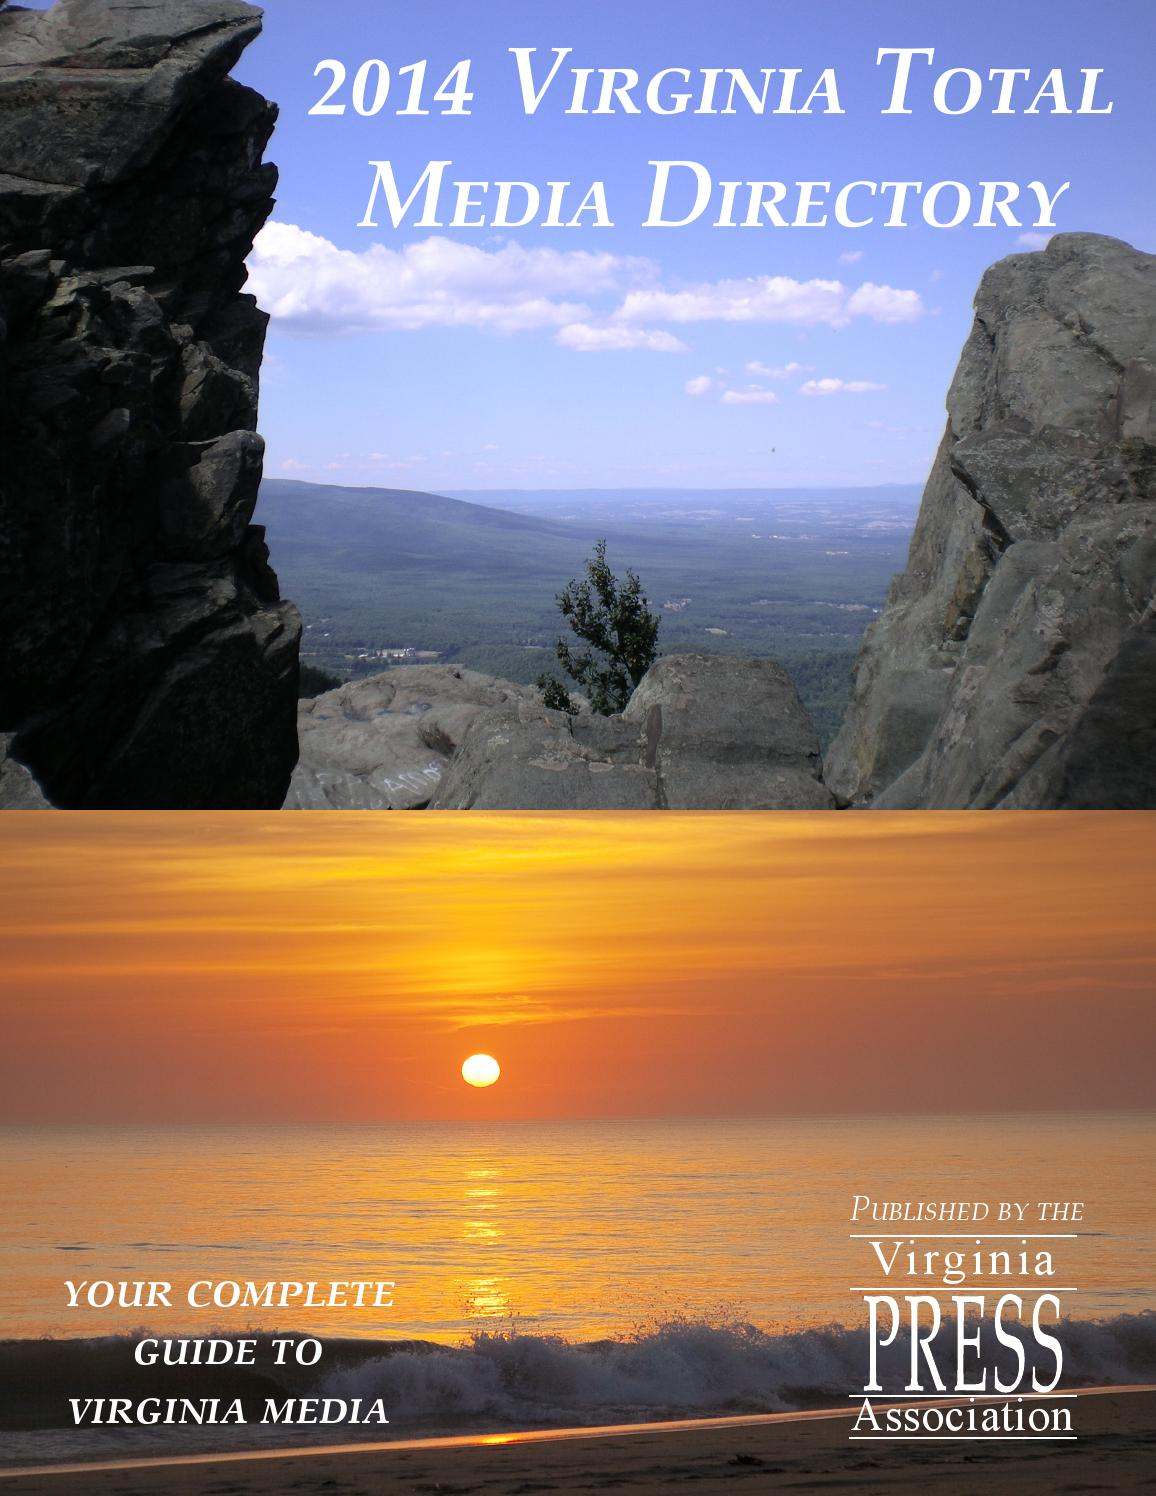 2014 Virginia Total Media Directory by vapress - issuu